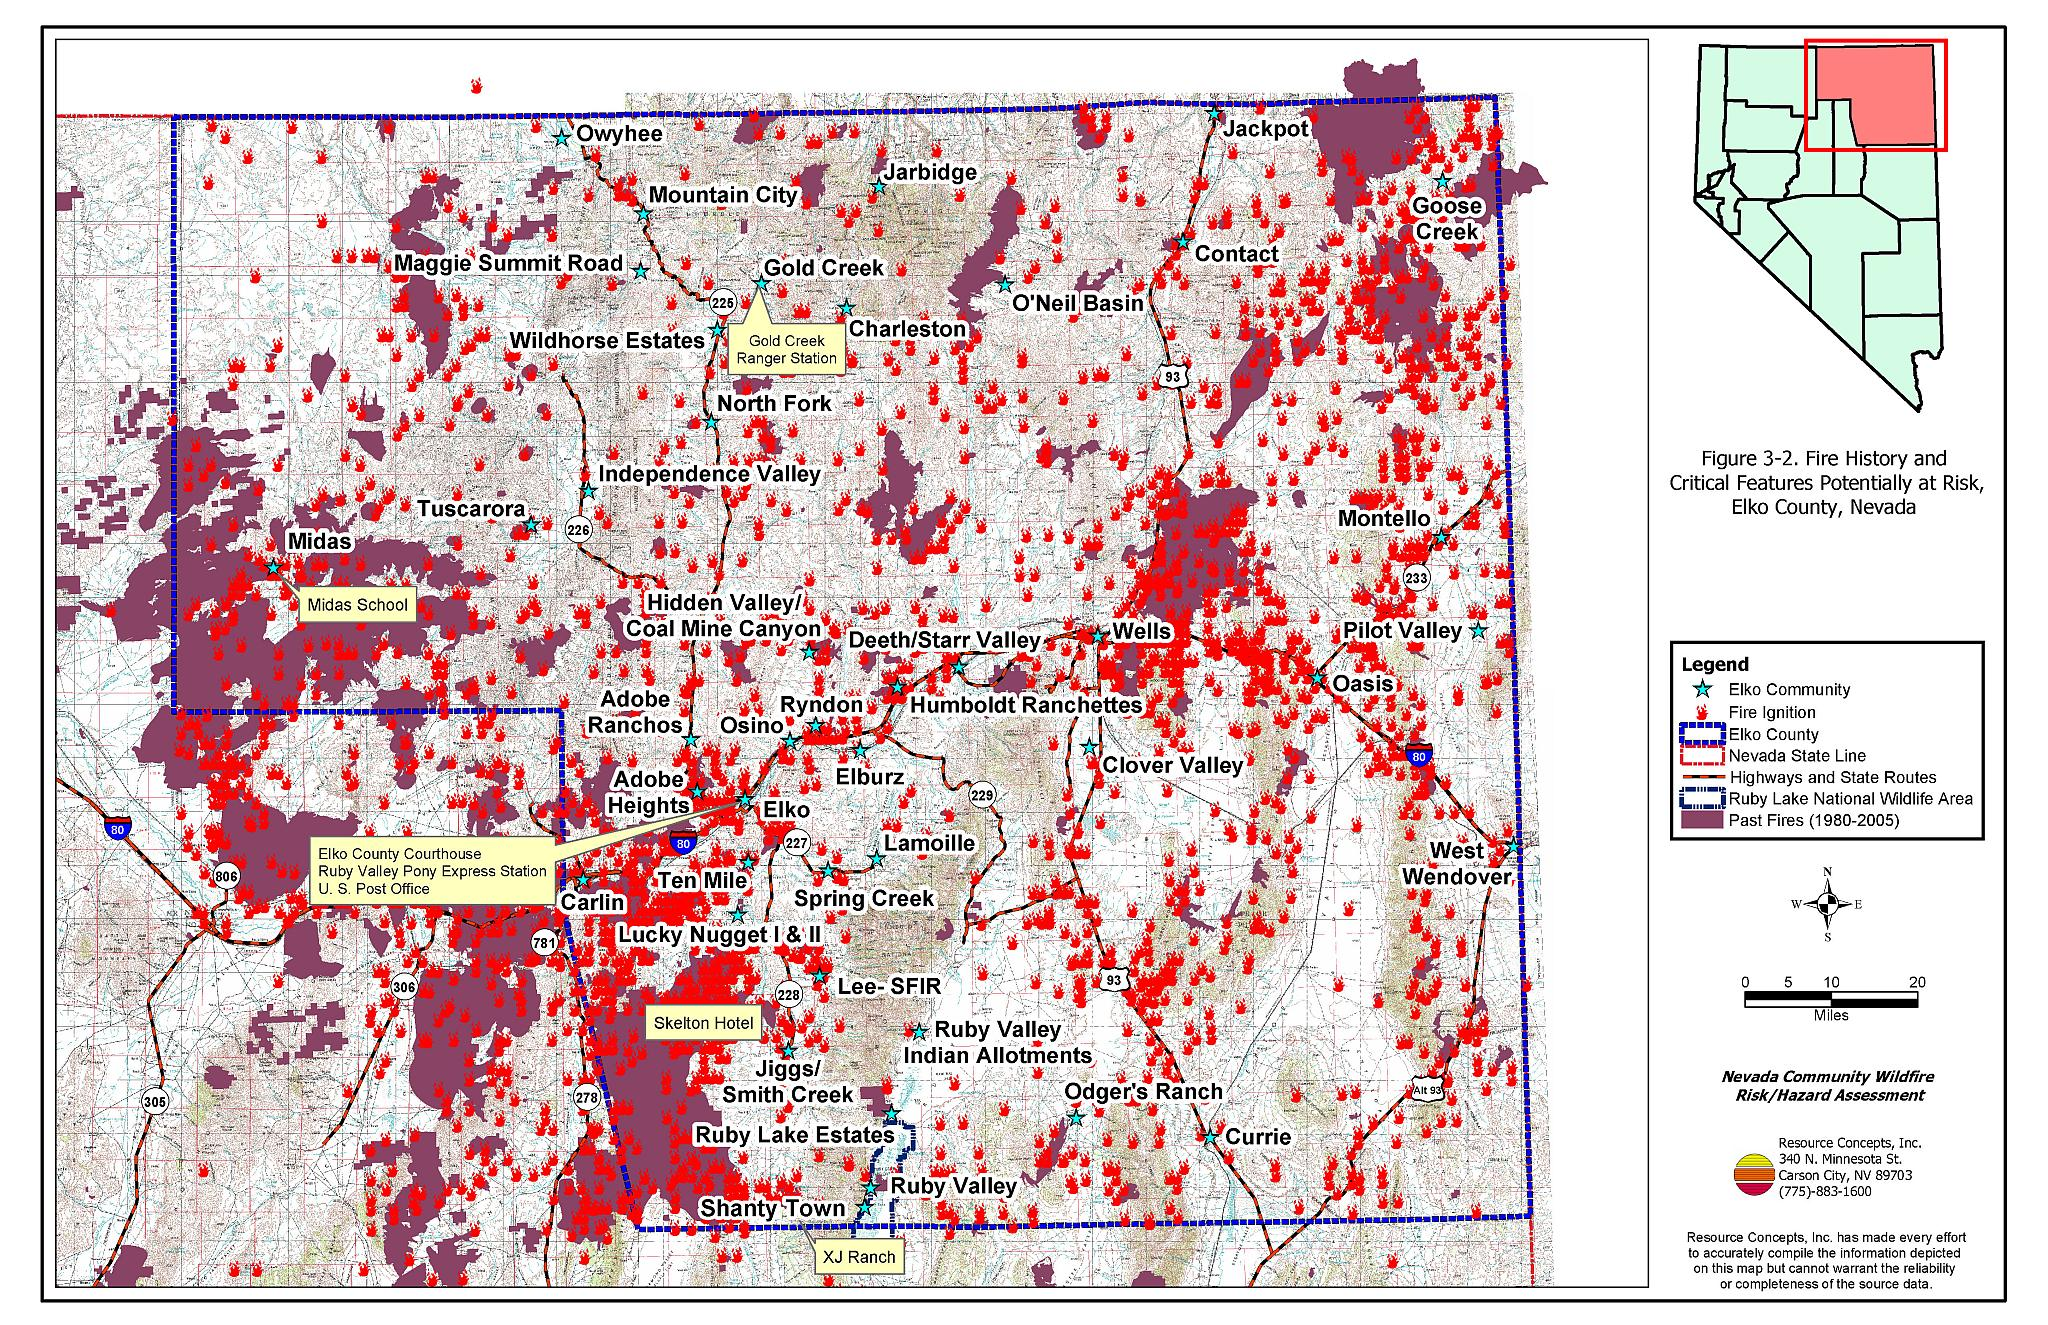 3.0 Description Of The County - Elko County Fire Plan - Nevada ... on crawford county missouri plat map, minnesota state bordering states map, nevada road conditions map, city of ely nv map,